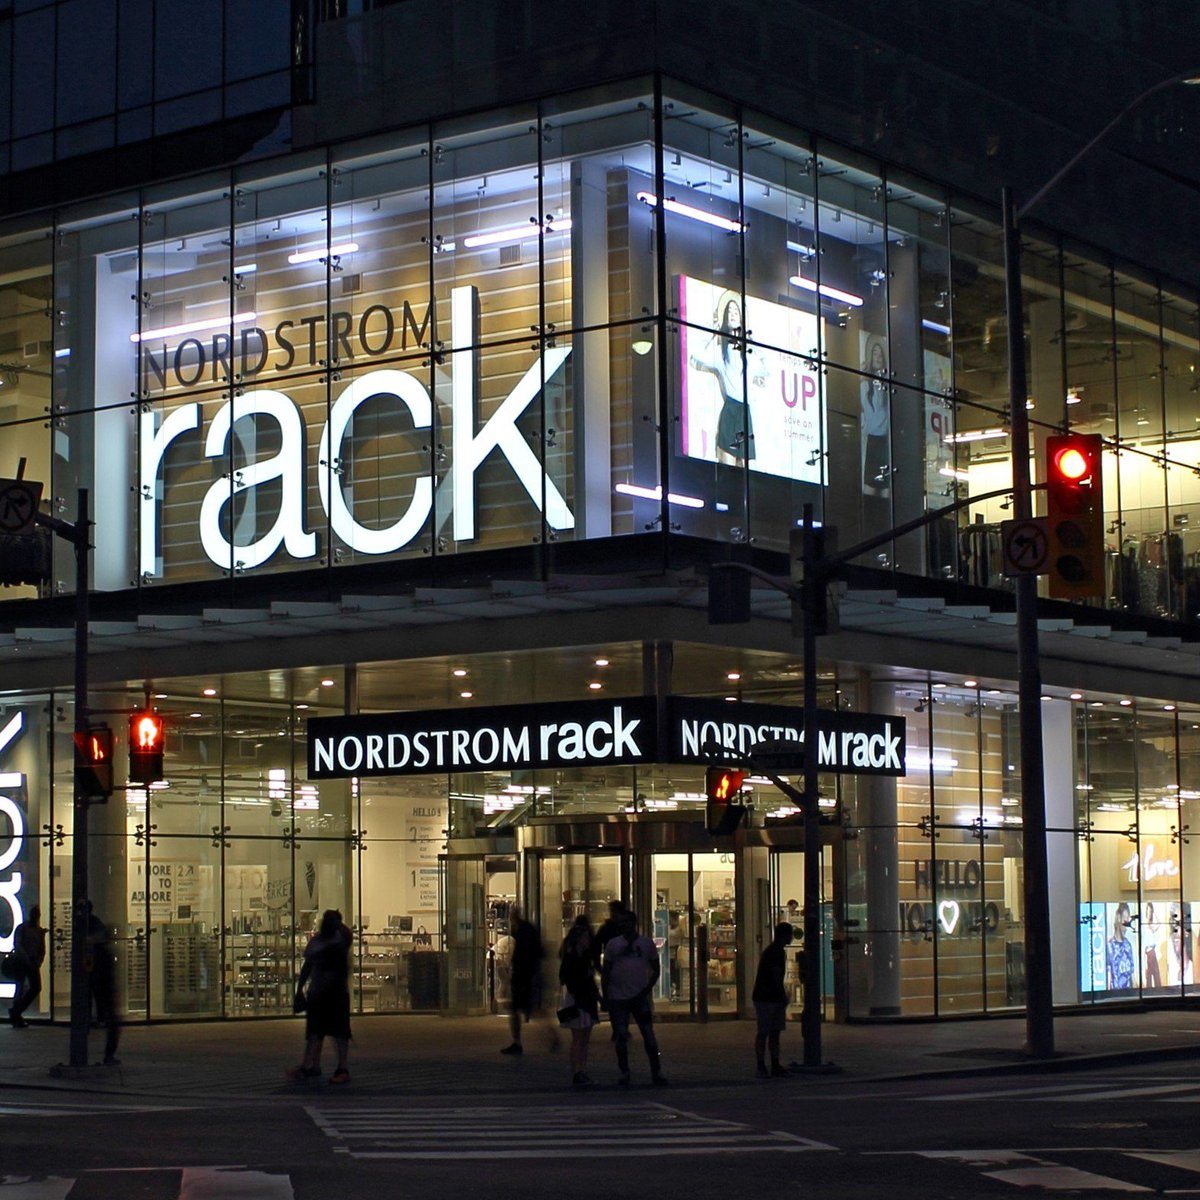 61b20e22905f5 Read how our expansion of Nordstrom Rack into Canada helped us transform  the customer experience at the door